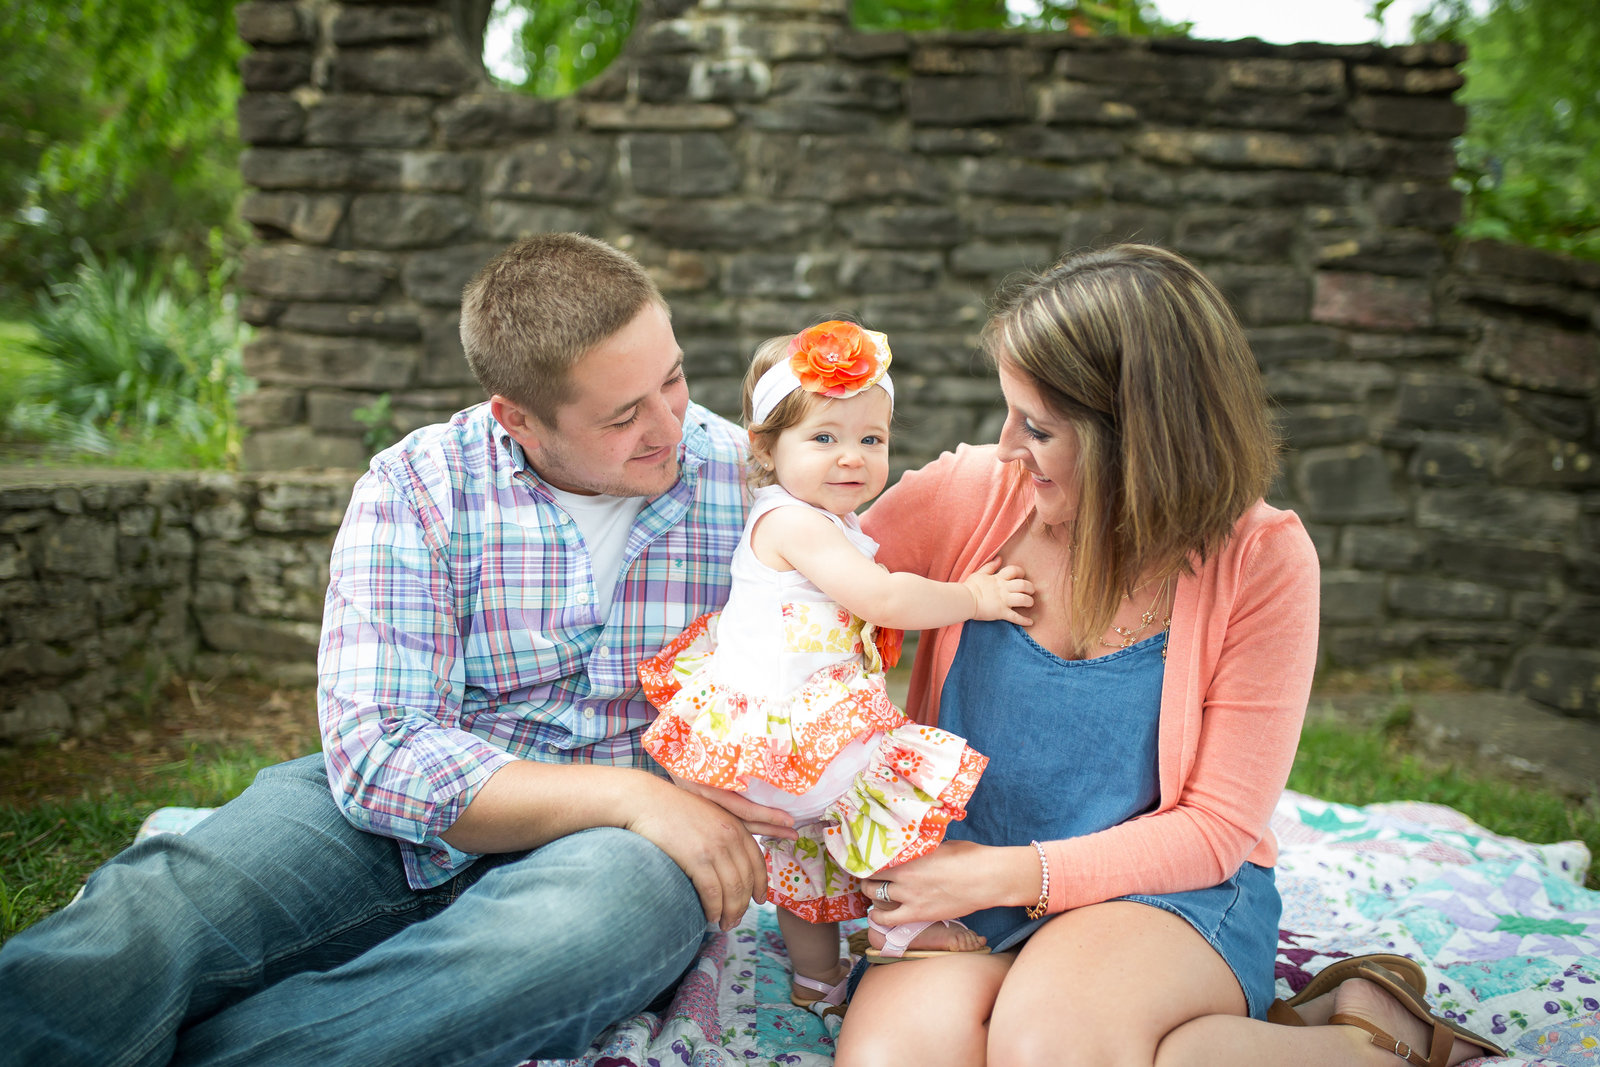 Knoxville Family Lifestyle Photographer serving East Tennessee